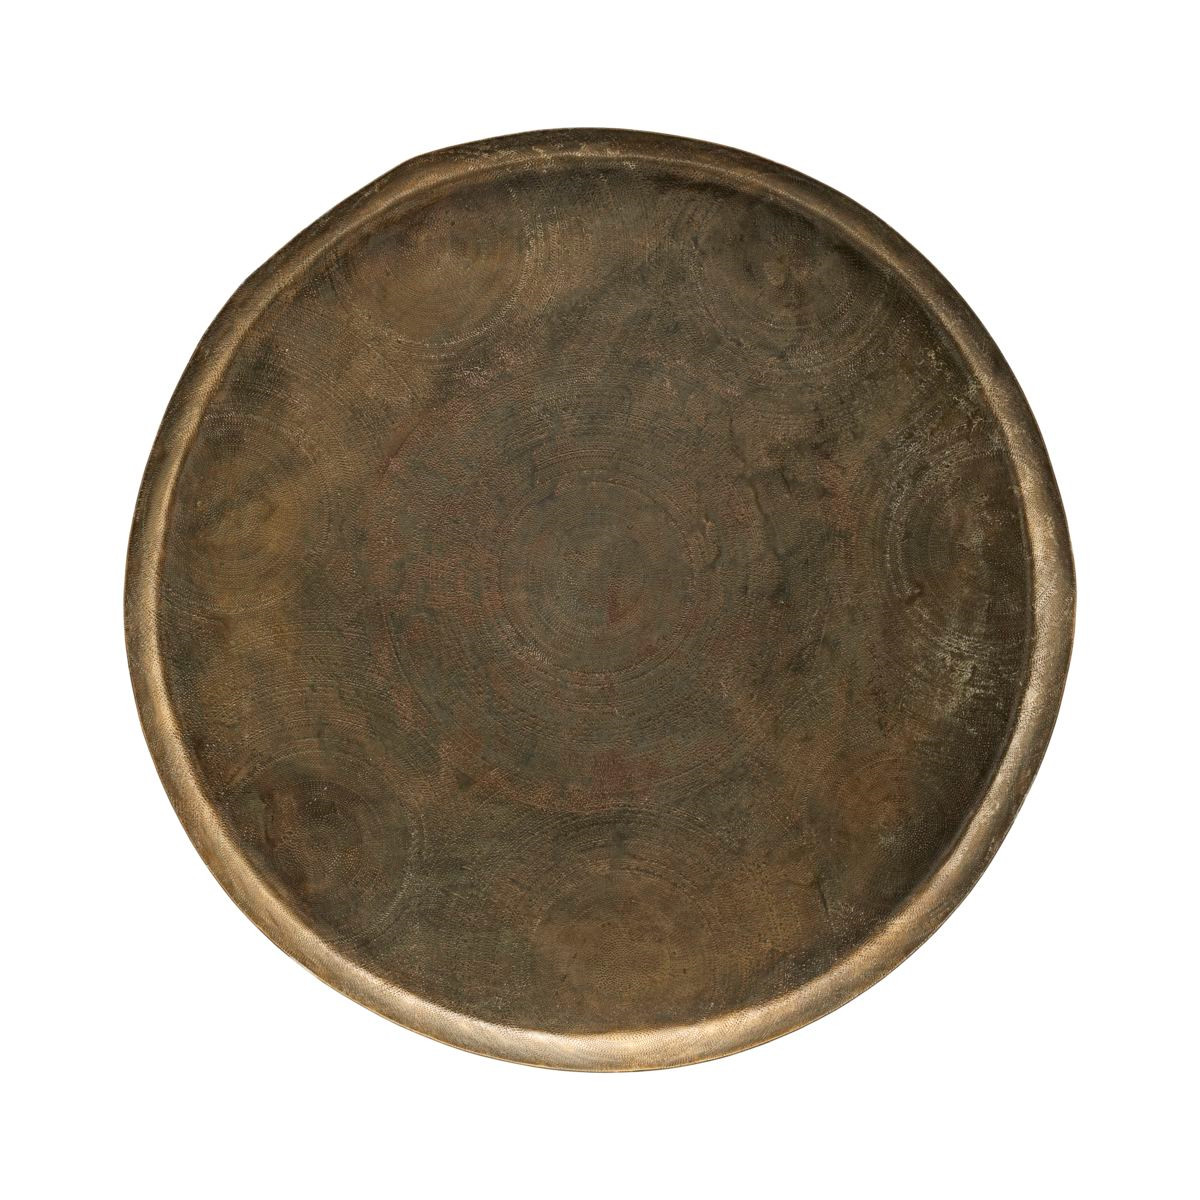 House Doctor Tray Jhansi Antique Brass